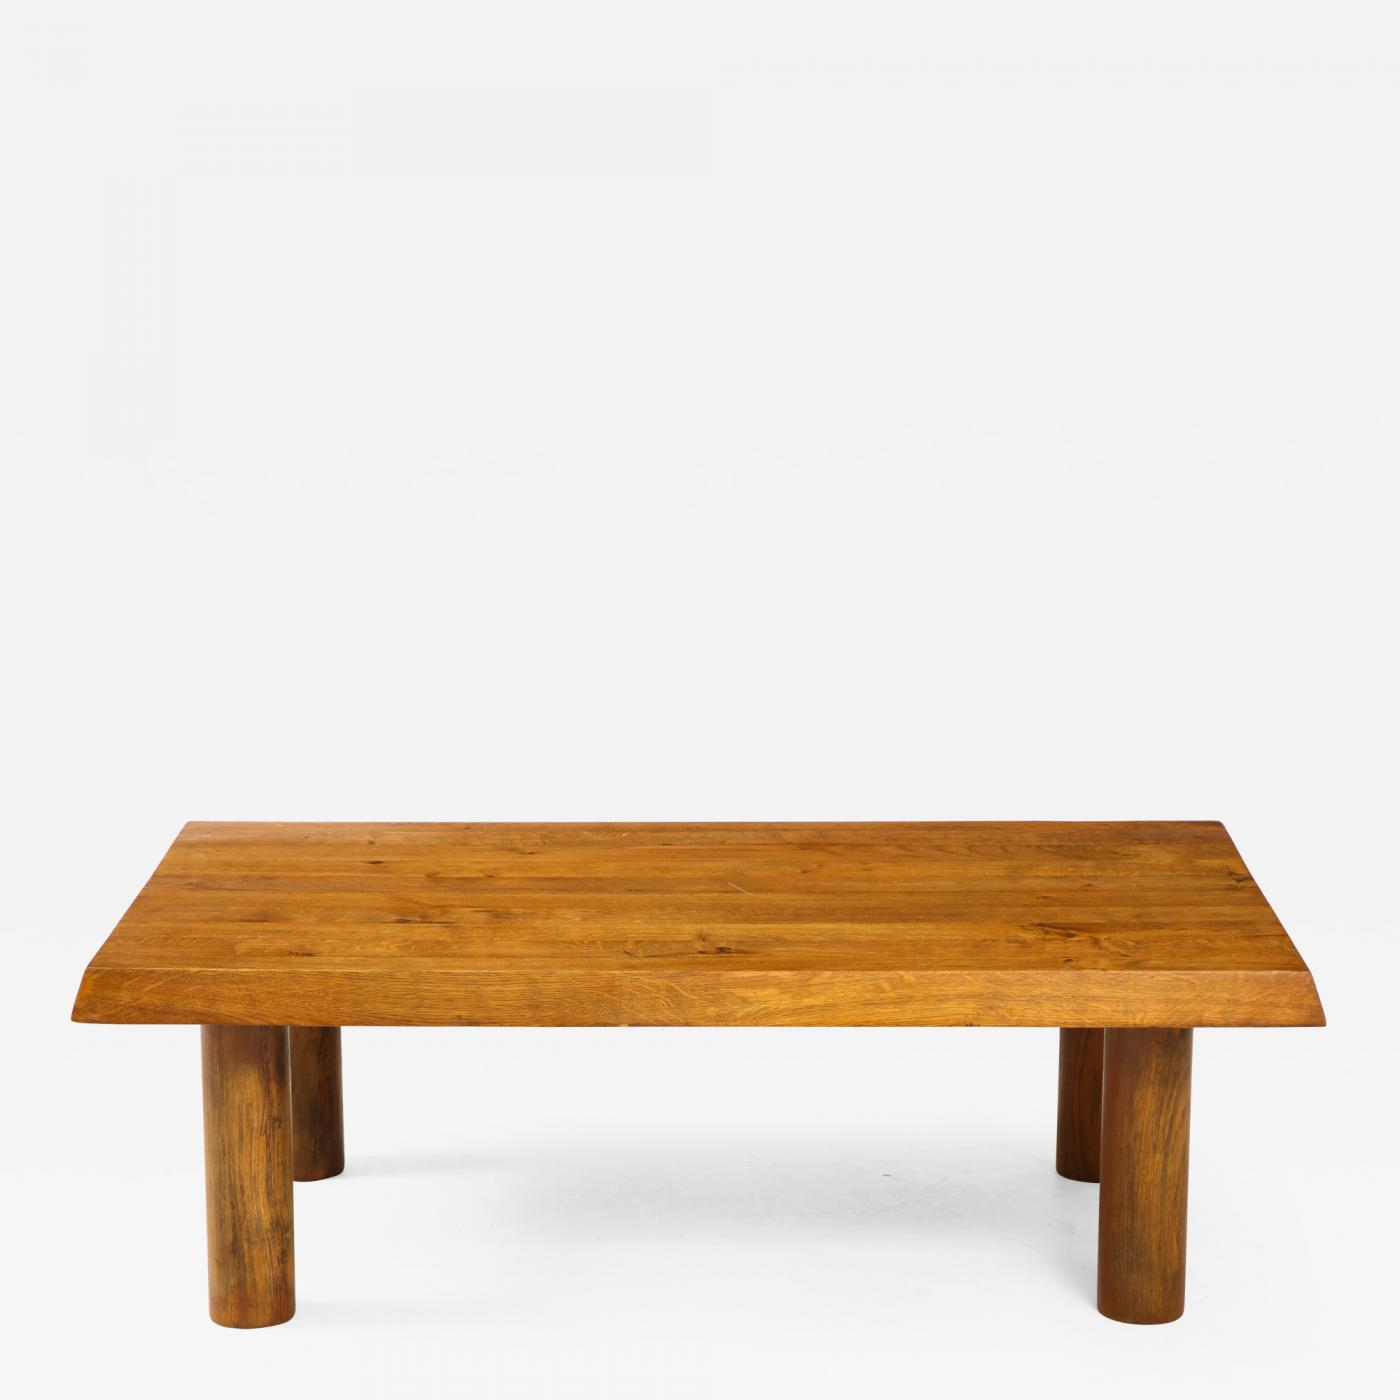 Prime Charlotte Perriand Mid Century French Oak Coffee Table Ocoug Best Dining Table And Chair Ideas Images Ocougorg